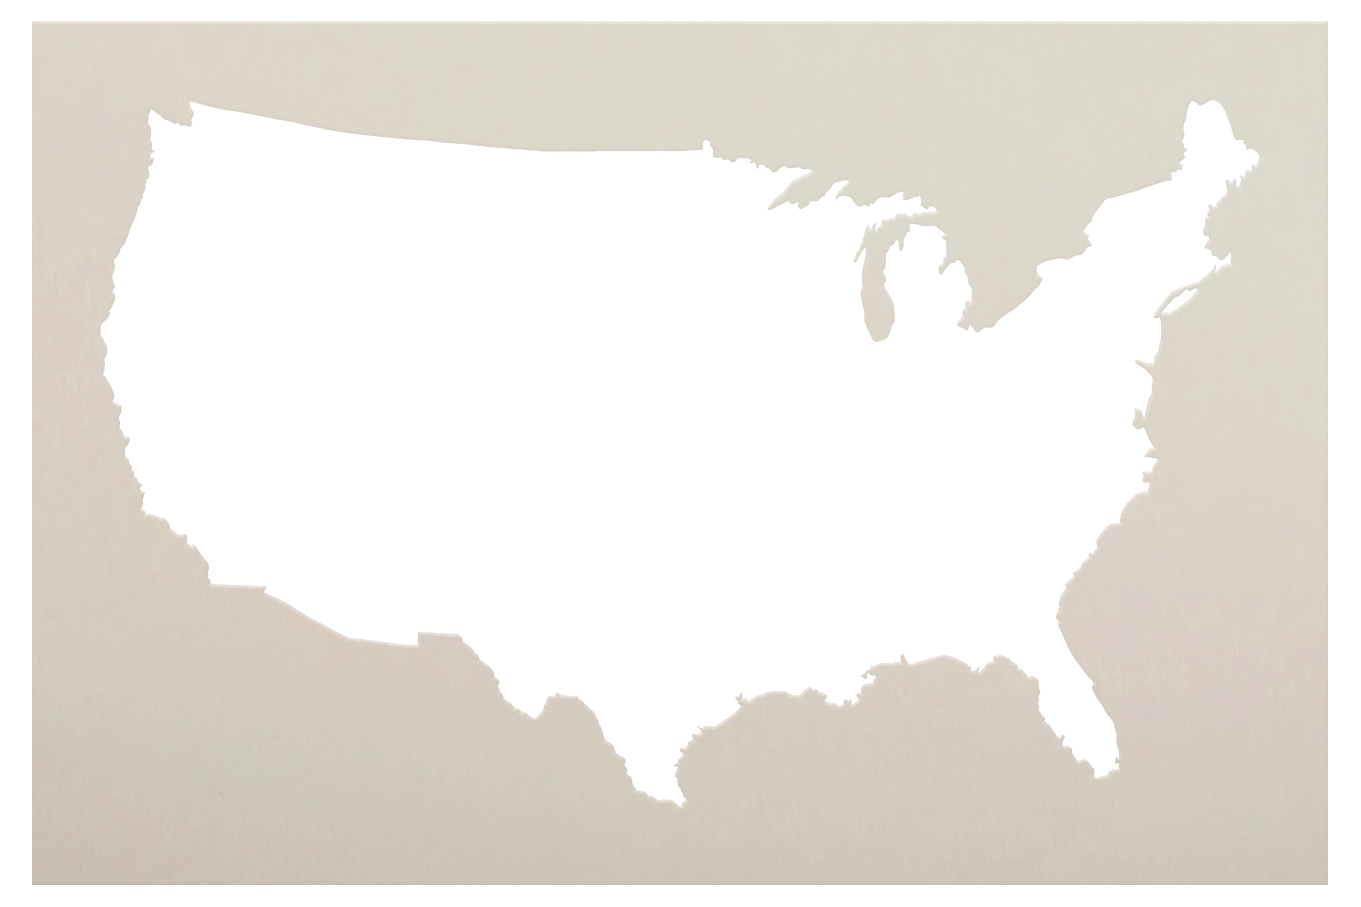 United States of America Stencil by StudioR12 | DIY USA Fourth of July Home Decor | Craft & Paint Wood Sign | Reusable Mylar Template | Select Size